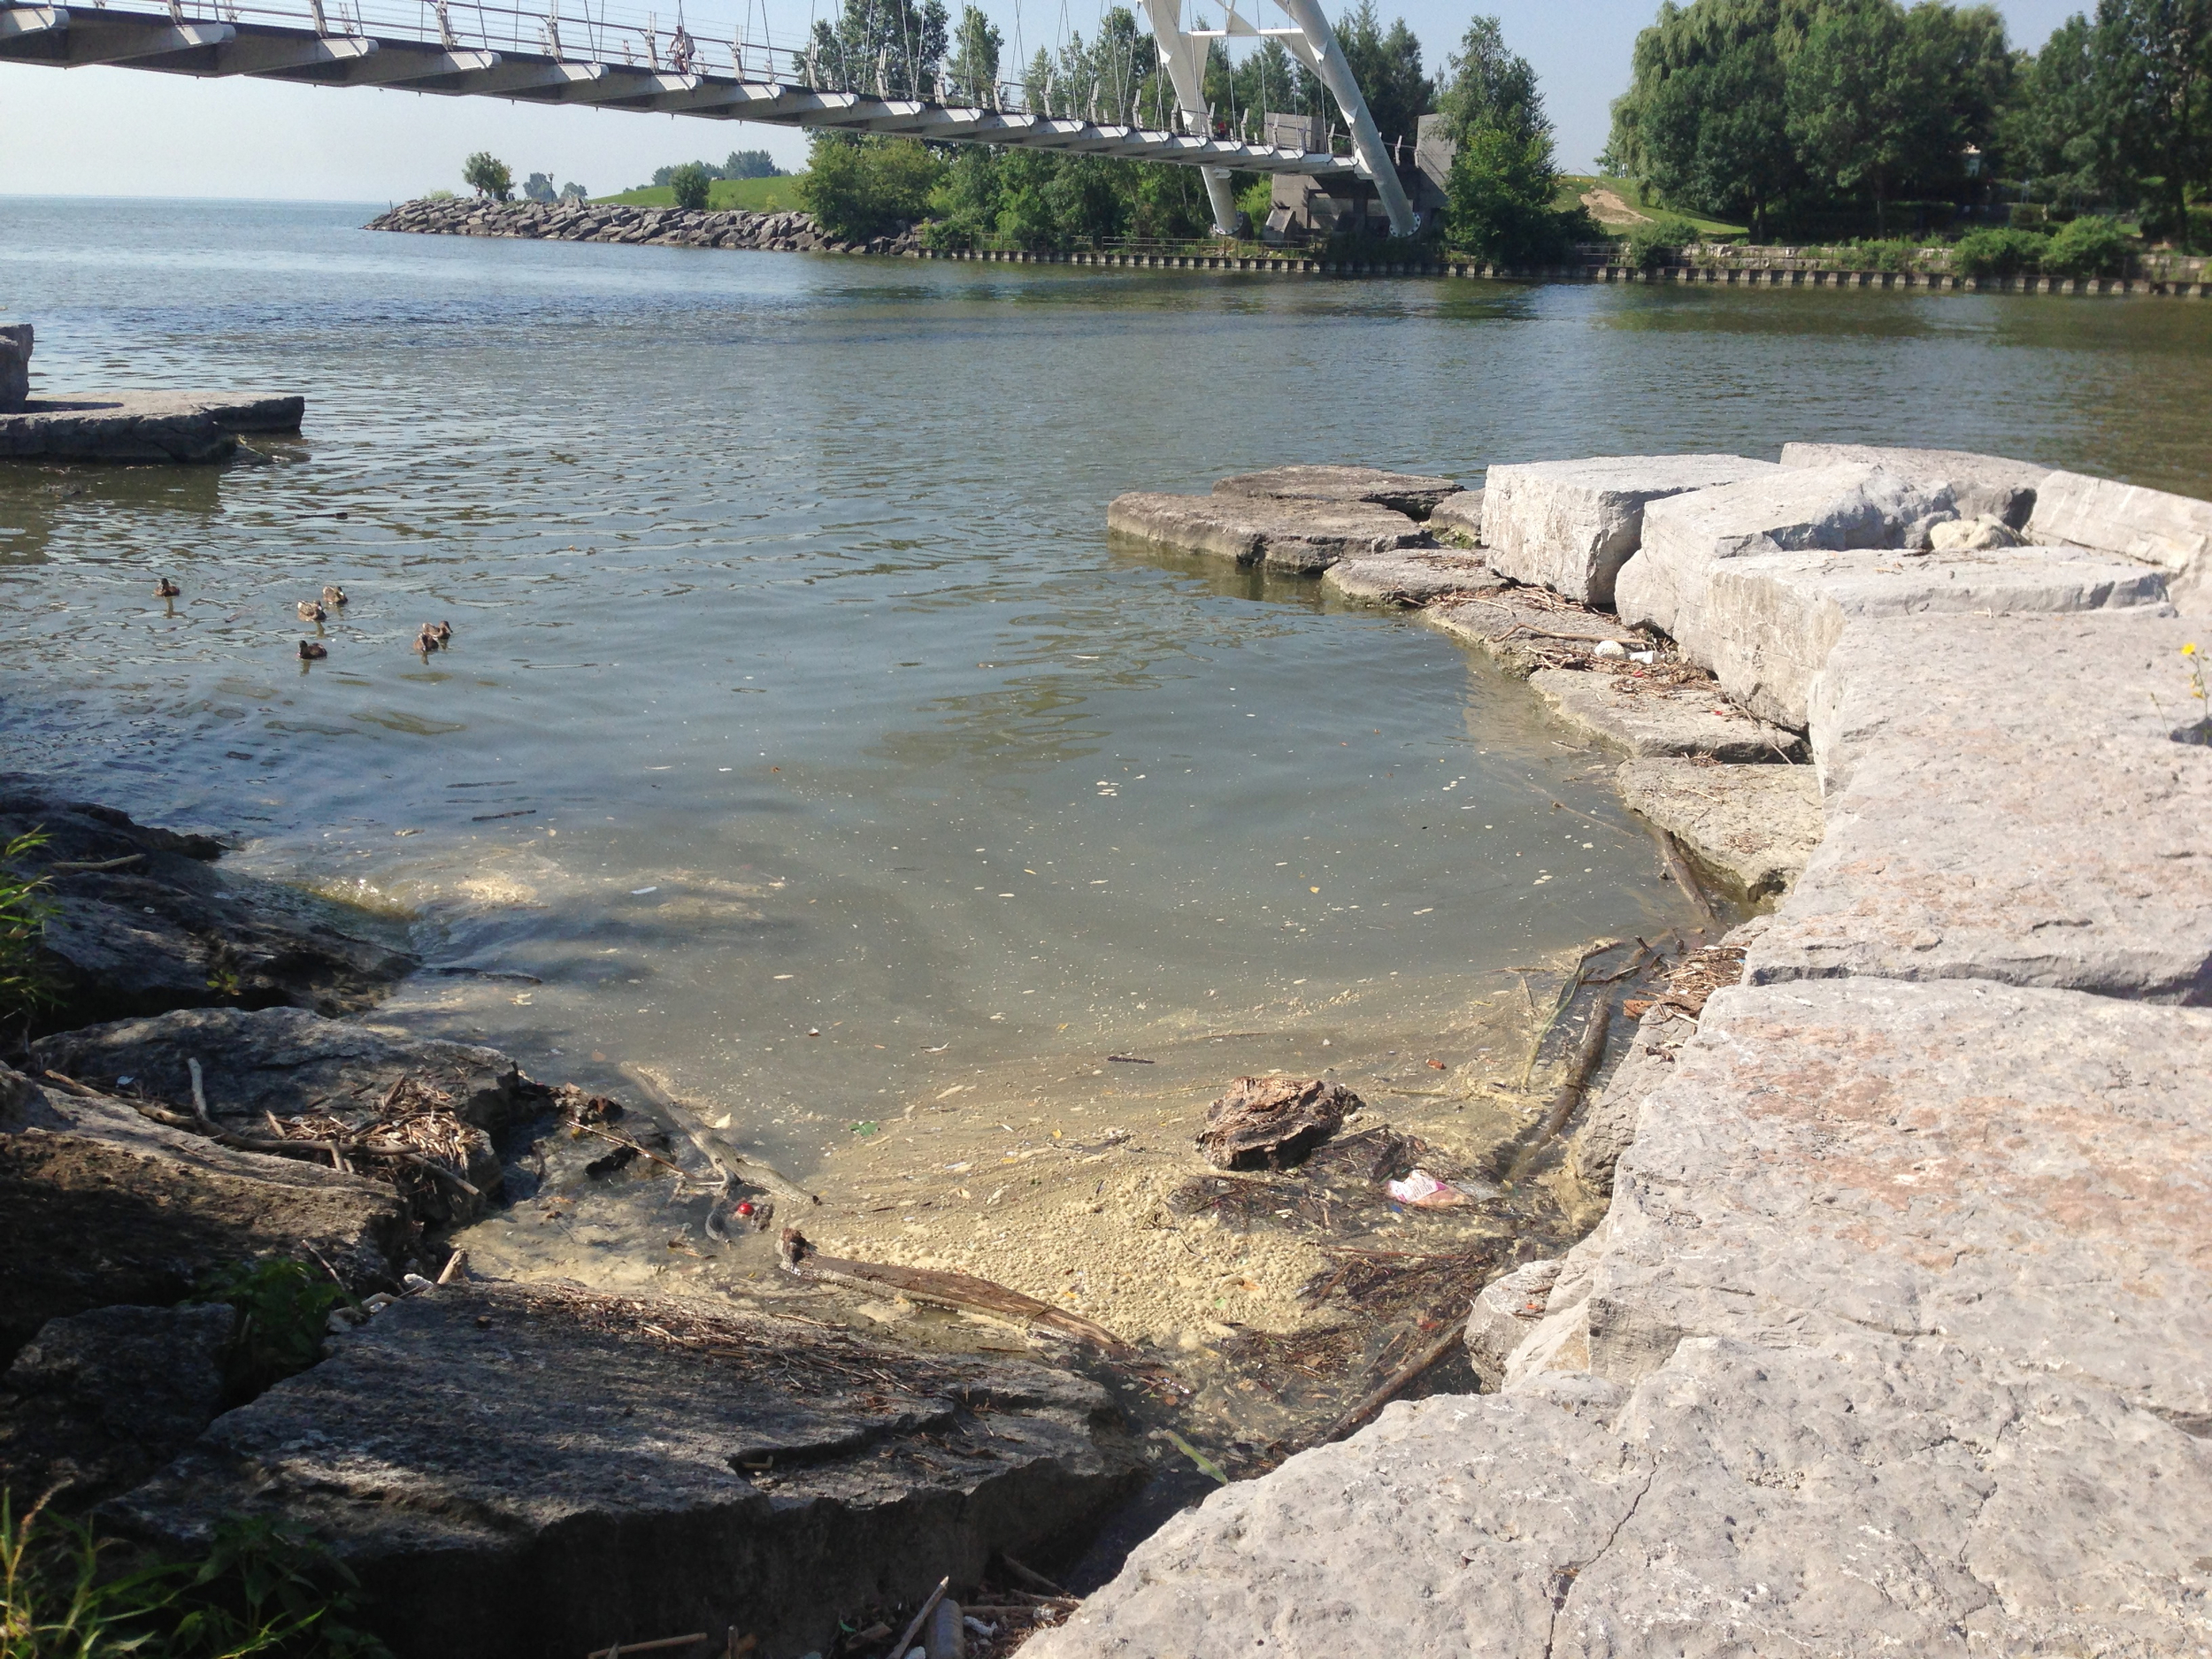 Discharge builds up along the shores of the Humber River just north of the pedestrian bridge. Photo courtesy of Lake Ontario Waterkeeper. July 16, 2013.